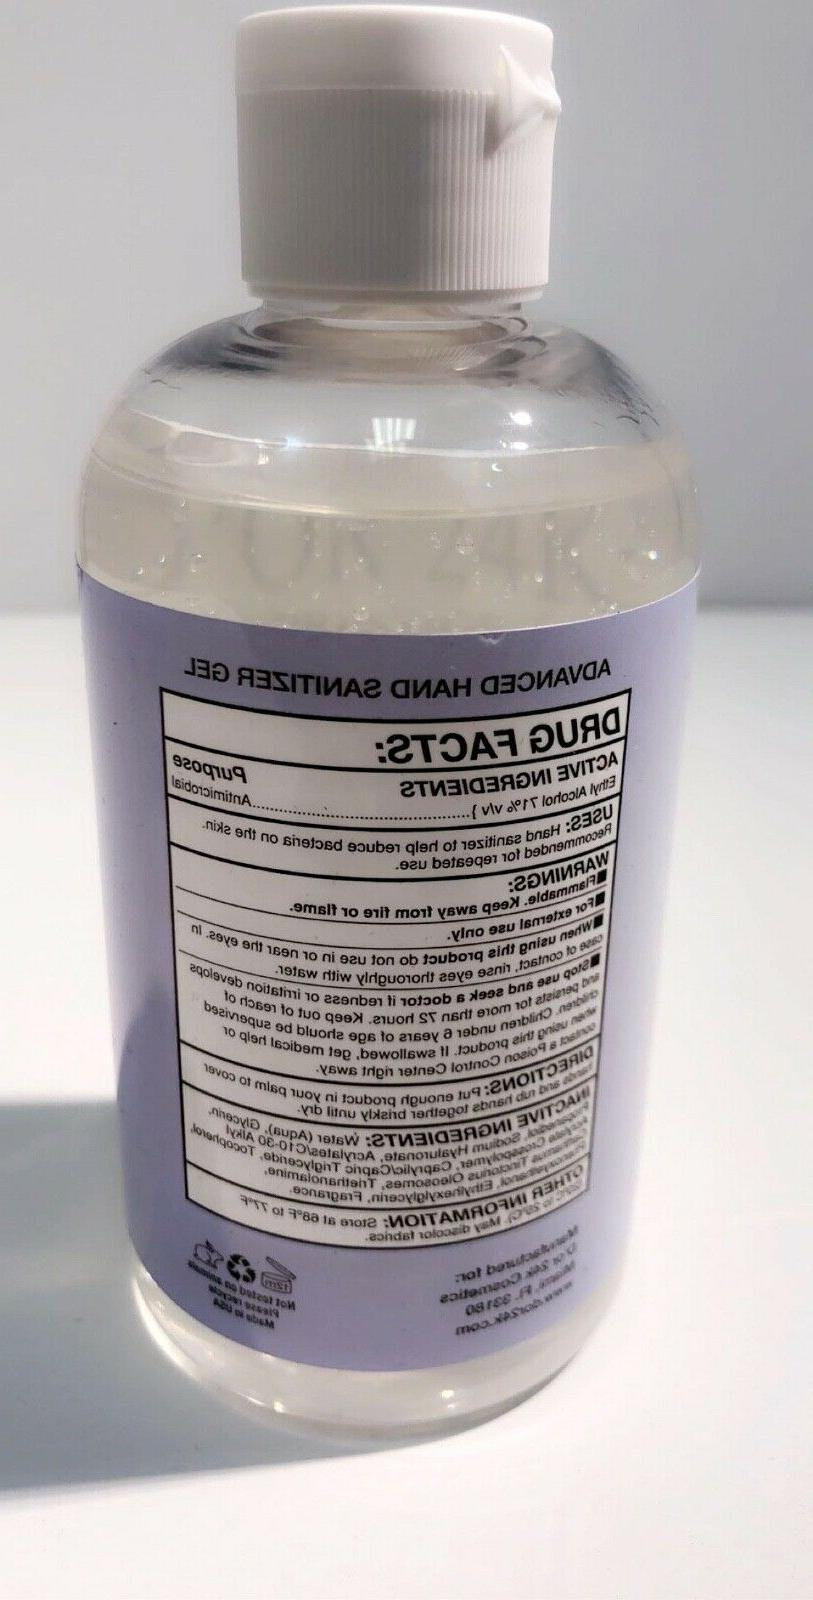 HAND GEL UNSCENTED 8 71% ALCOHOL MADE IN USA SHIPS